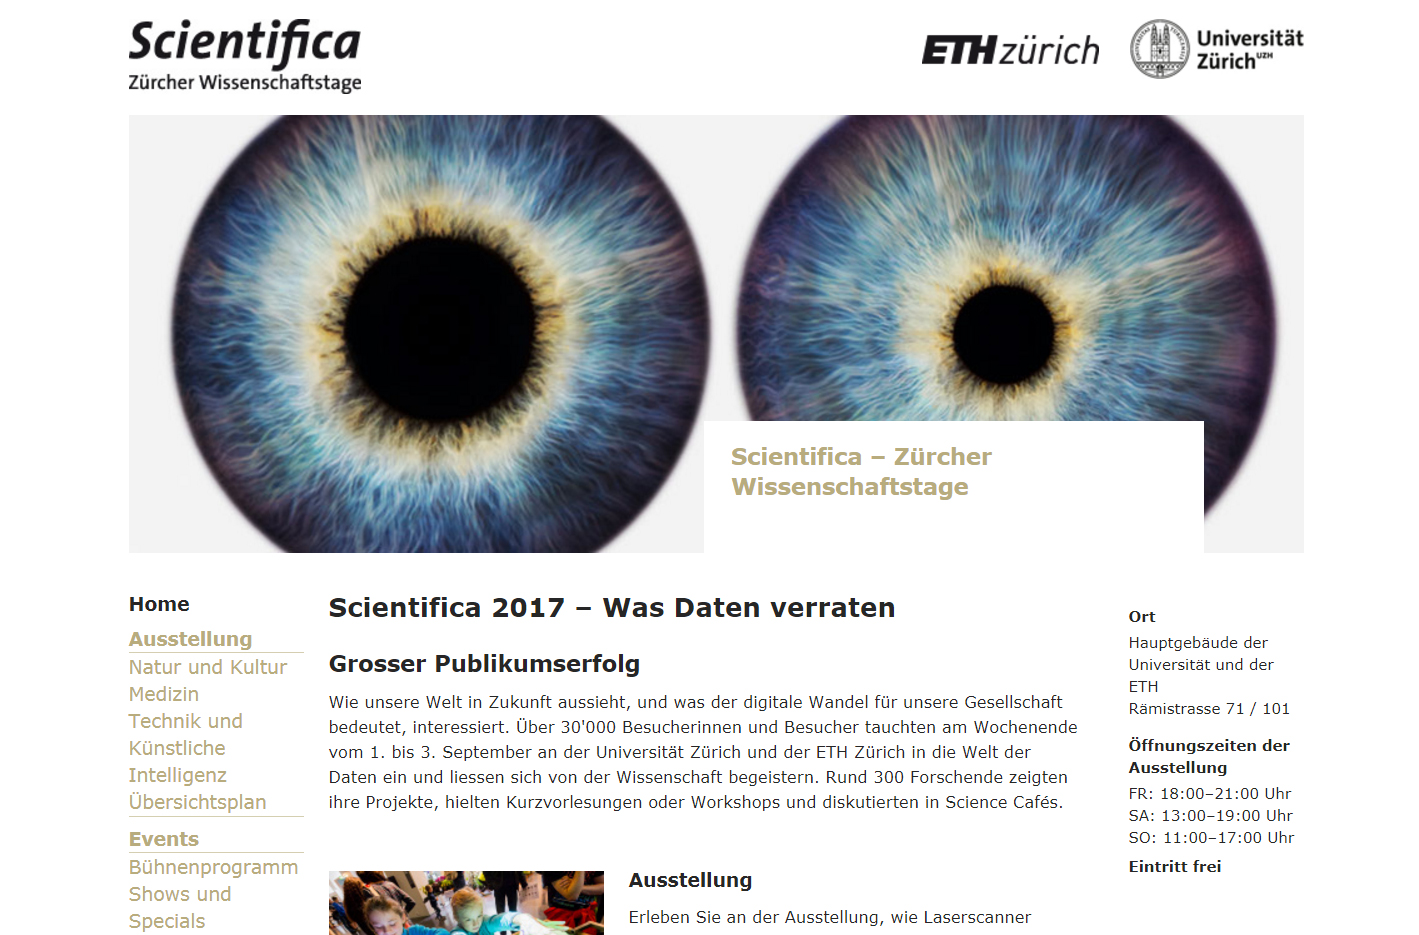 Scientifica zurich Bad UX - Link Color